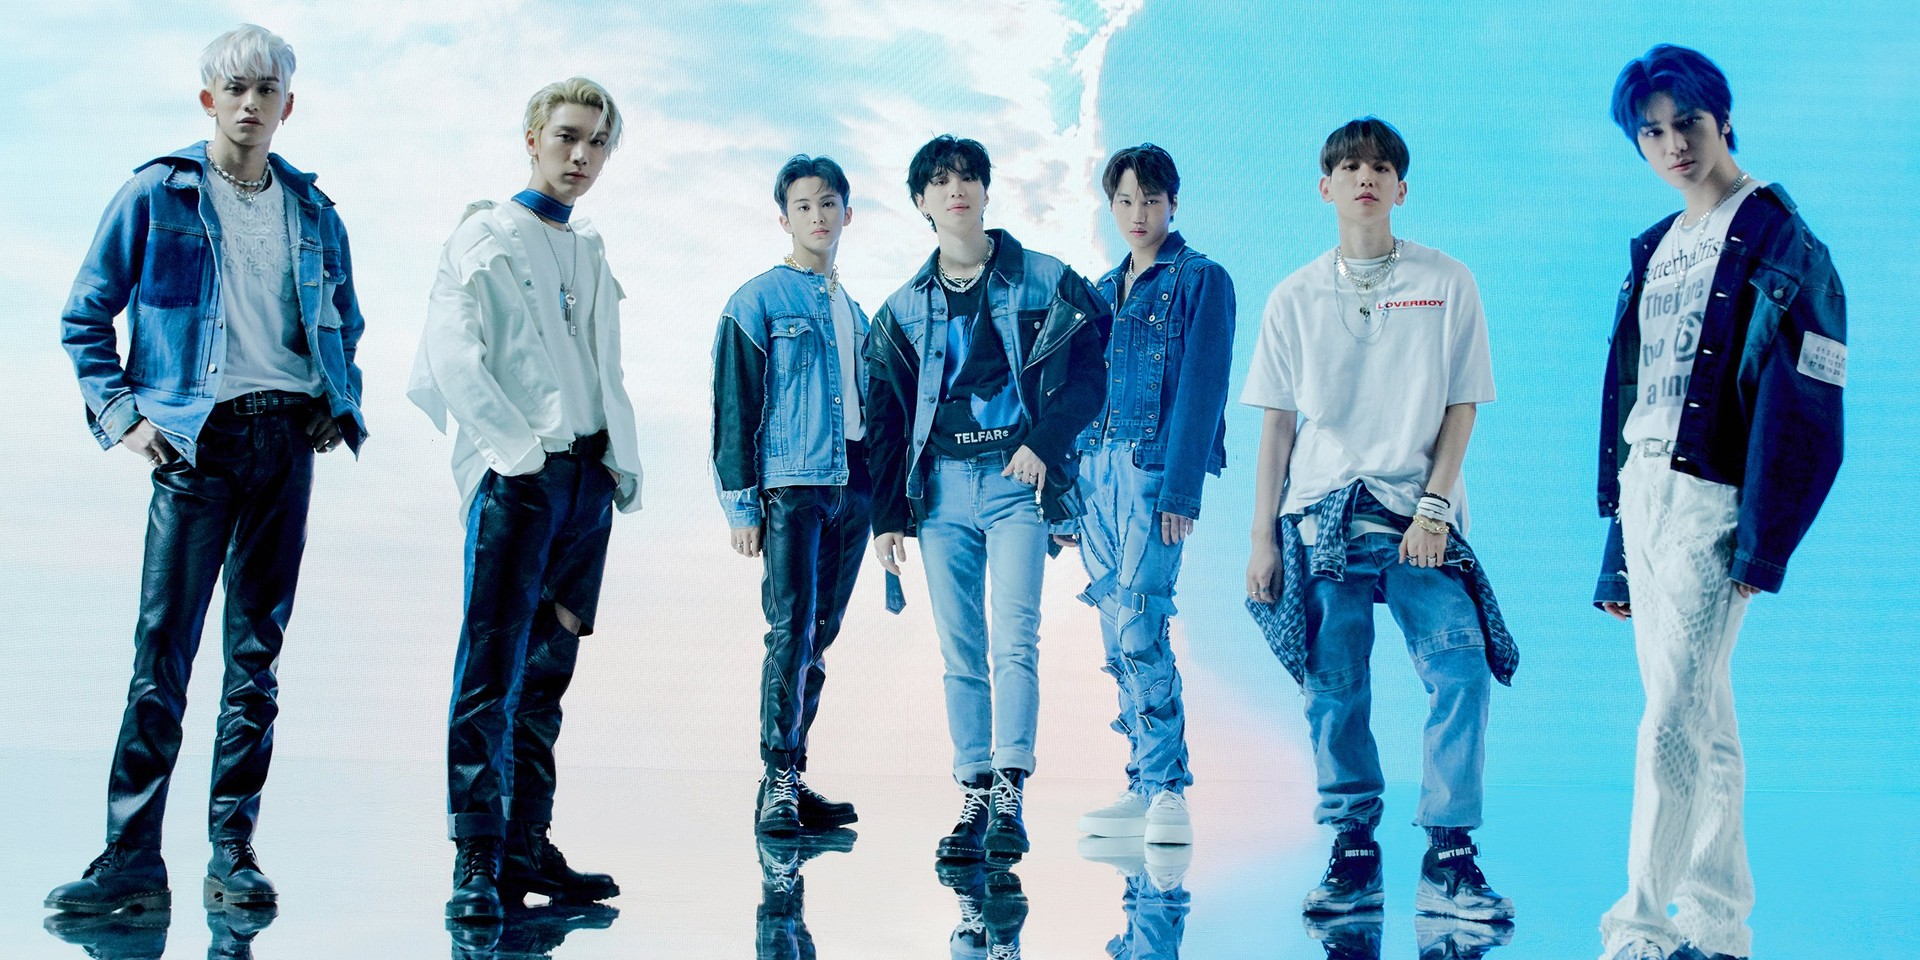 SuperM has finally released their debut album 'SuperOne', here's a guide to the members of the K-pop supergroup